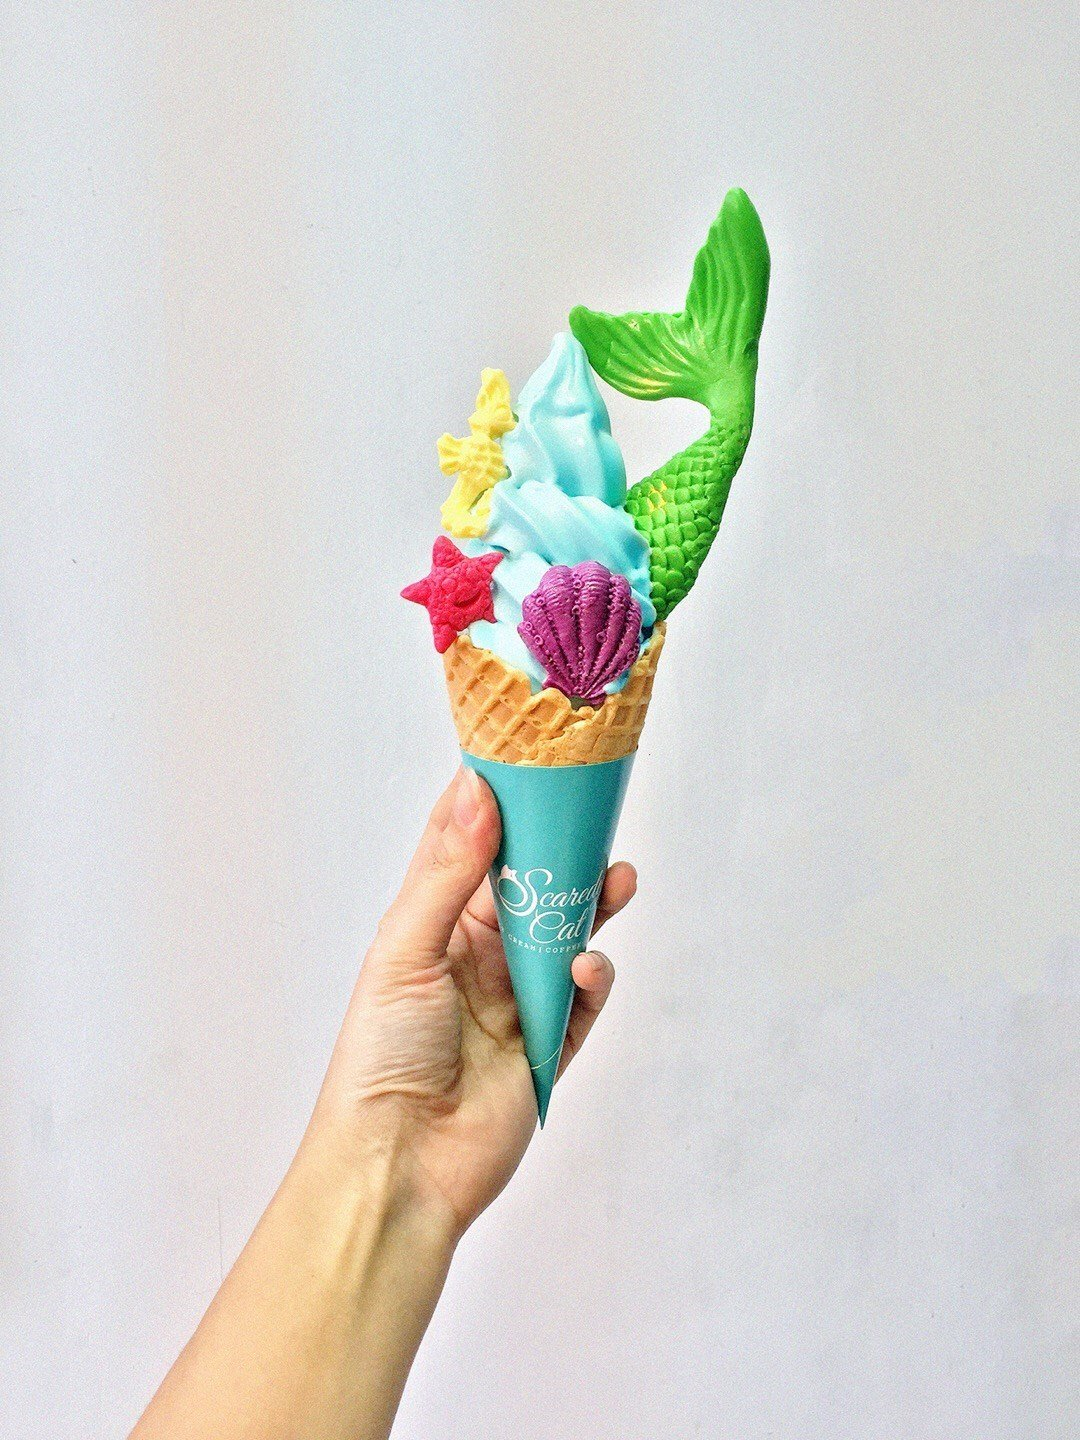 Mermeid Soft Serve at Scaredy Cat in Hong Kong